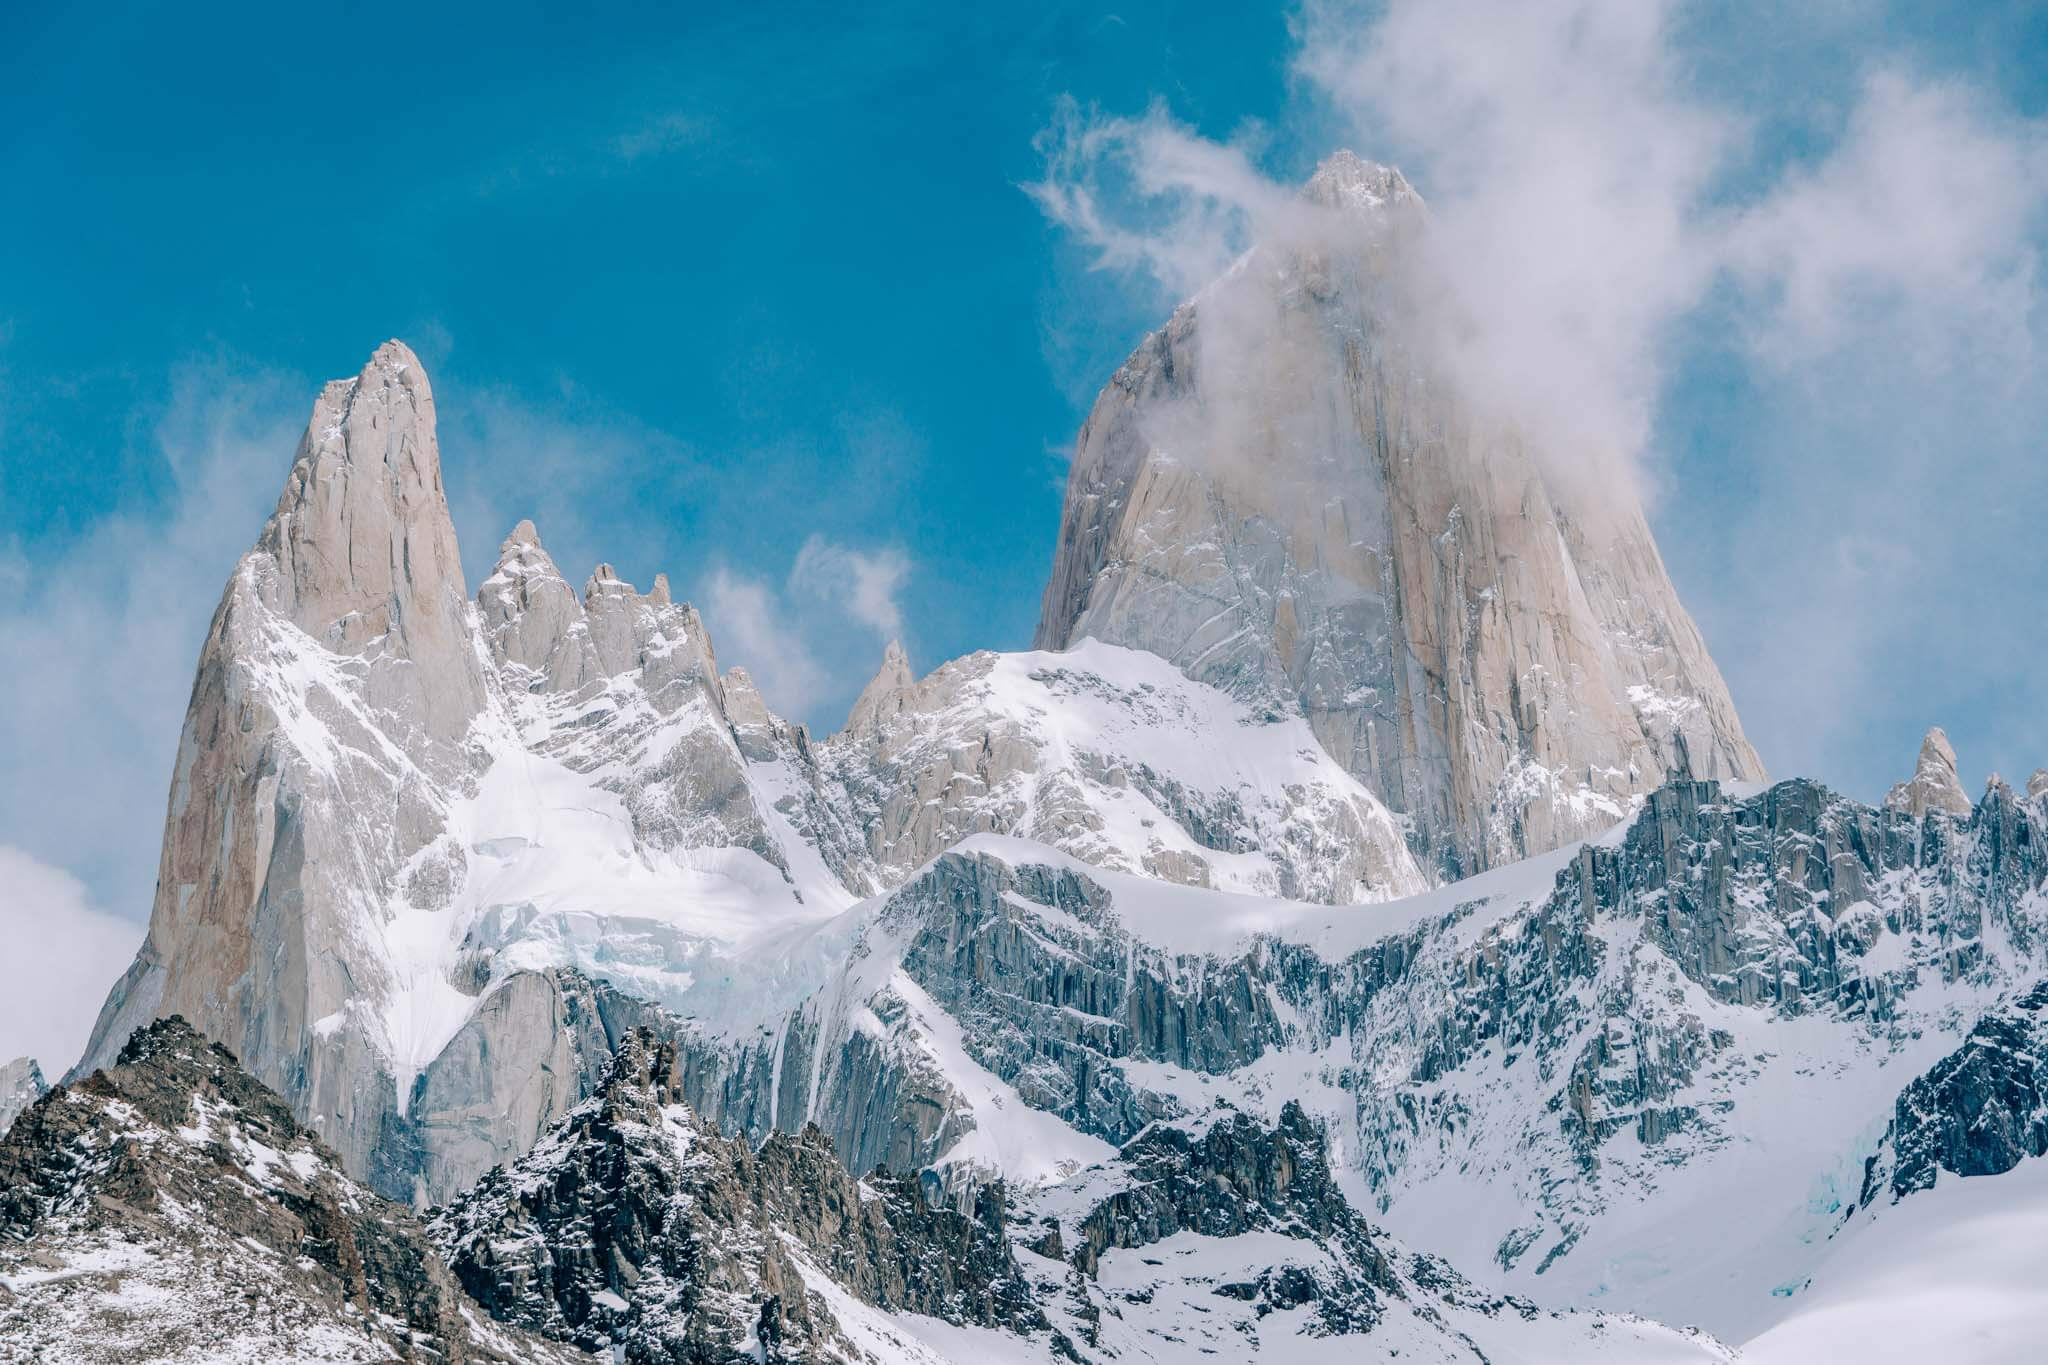 The-best-outdoor-adventures-to-go-on-in-Argentina-Wheres-Mollie-A-travel-and-adventure-lifestyle-blog-15.jpg